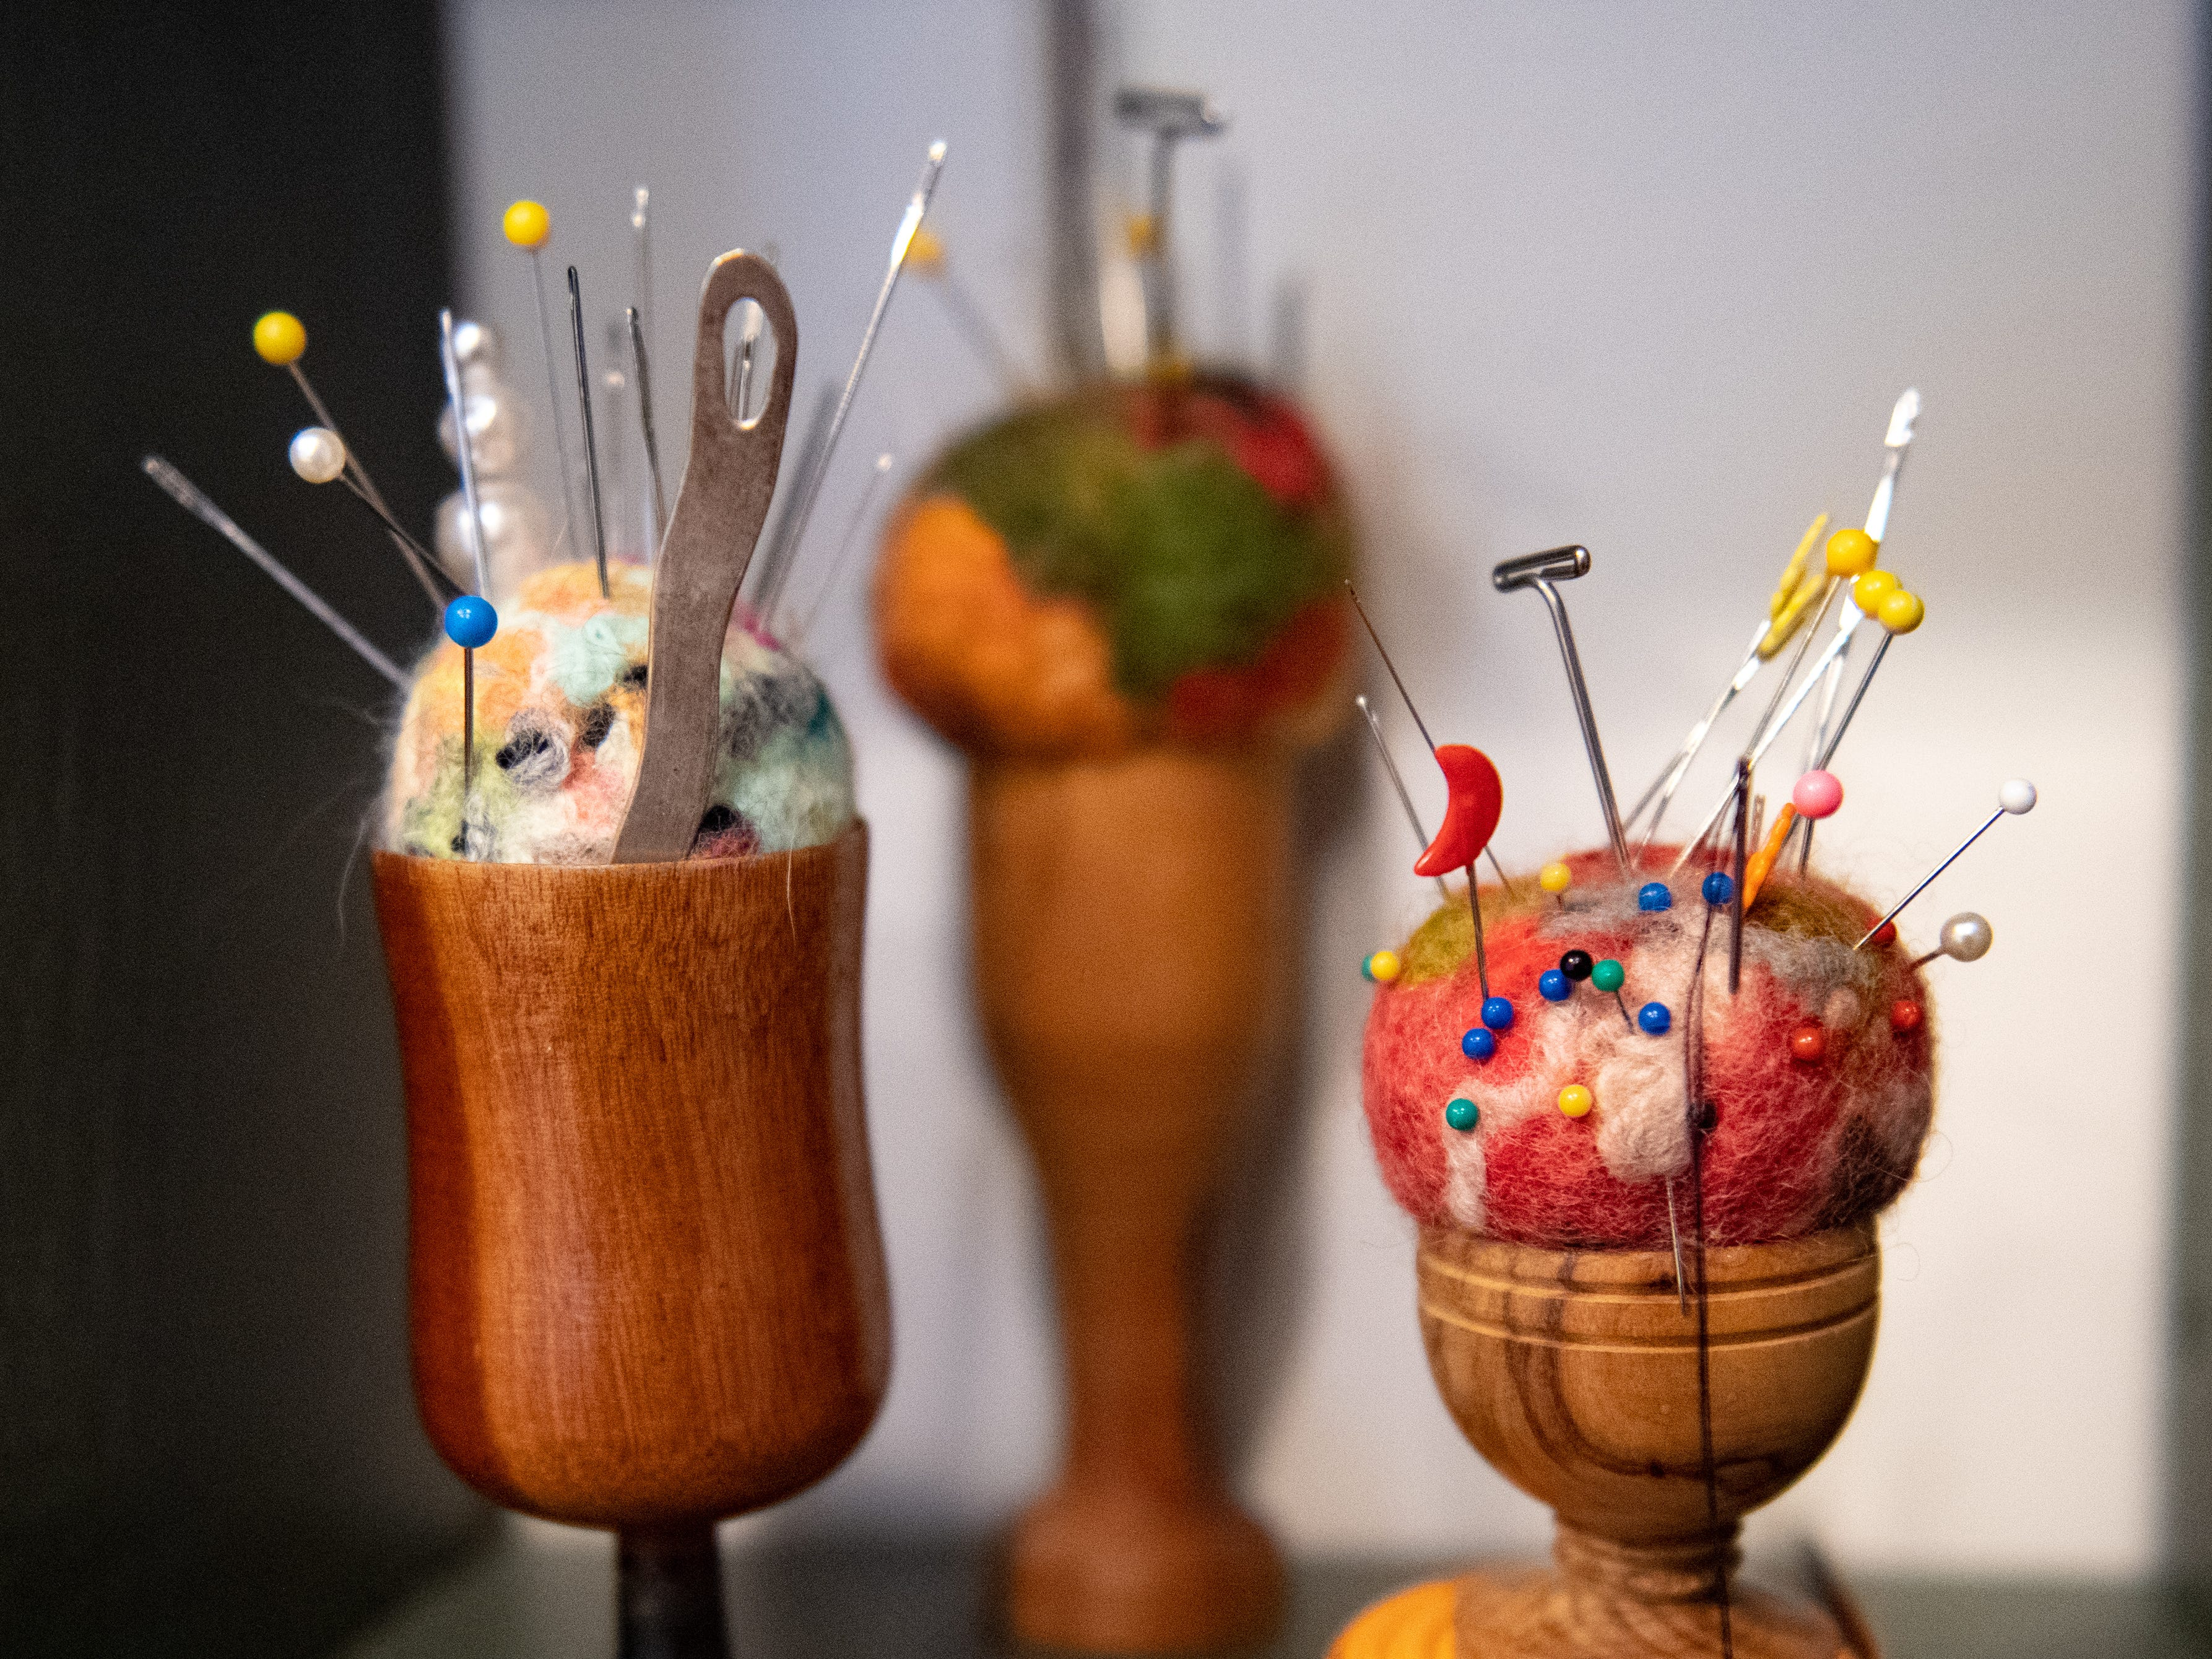 Artistic pin cushions at Venture in downtown York. Venture is part of the Parliament Arts Organization in the Royal Square District, April 11, 2019.